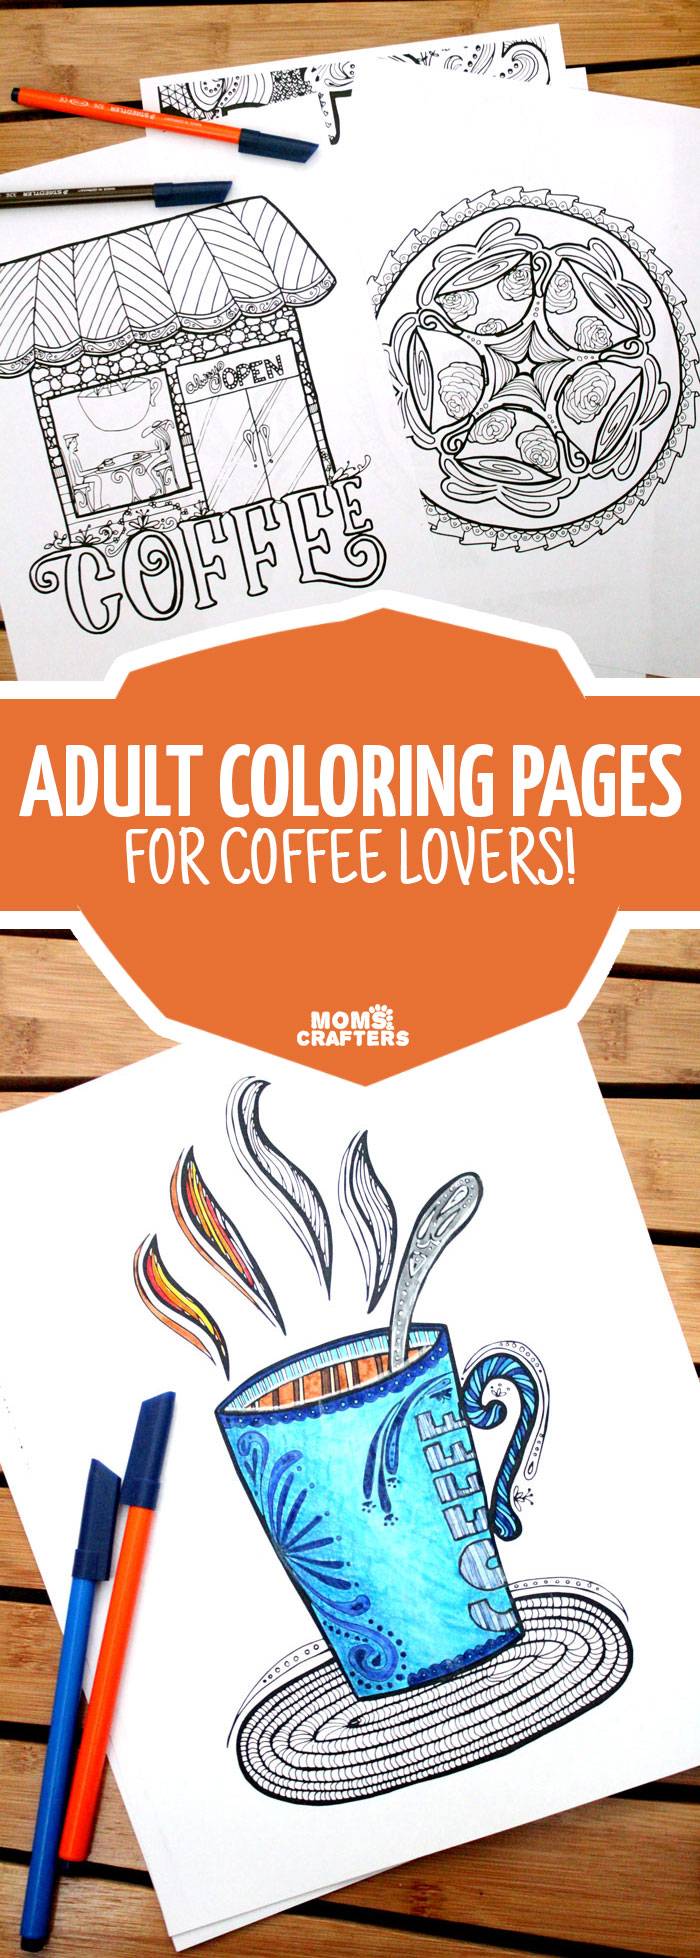 Mandala coloring pages (jumbo coloring book) - If You Love Coffee And You Love Adult Colouring You Ll Want To Grab